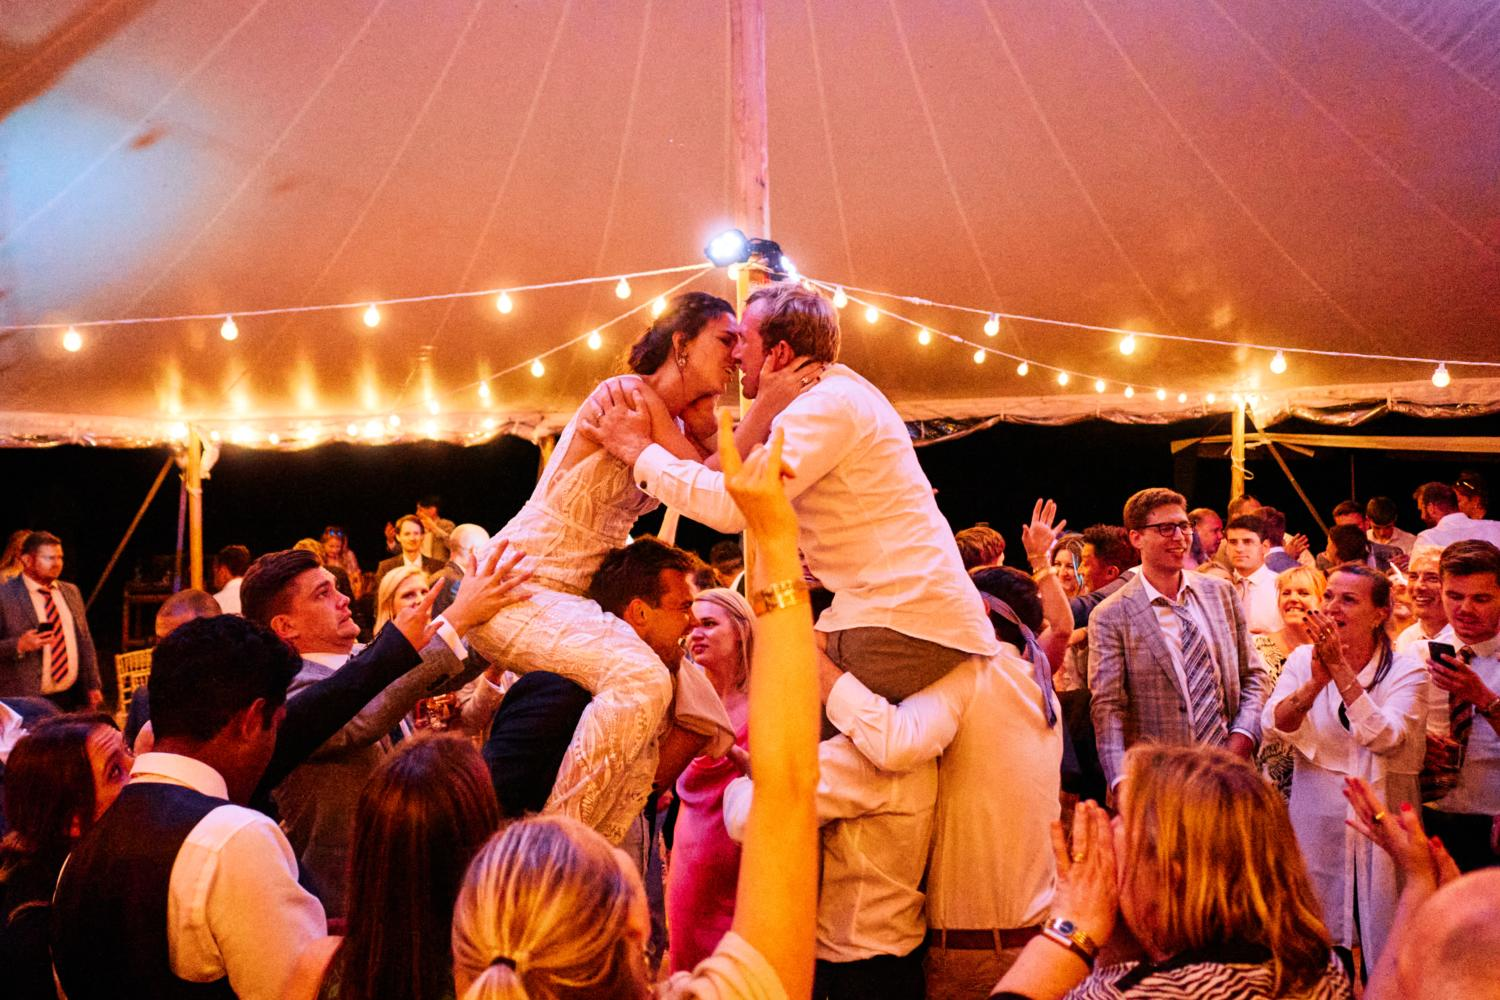 Bride and groom kiss each other on the shoulders of their friends in a marquee